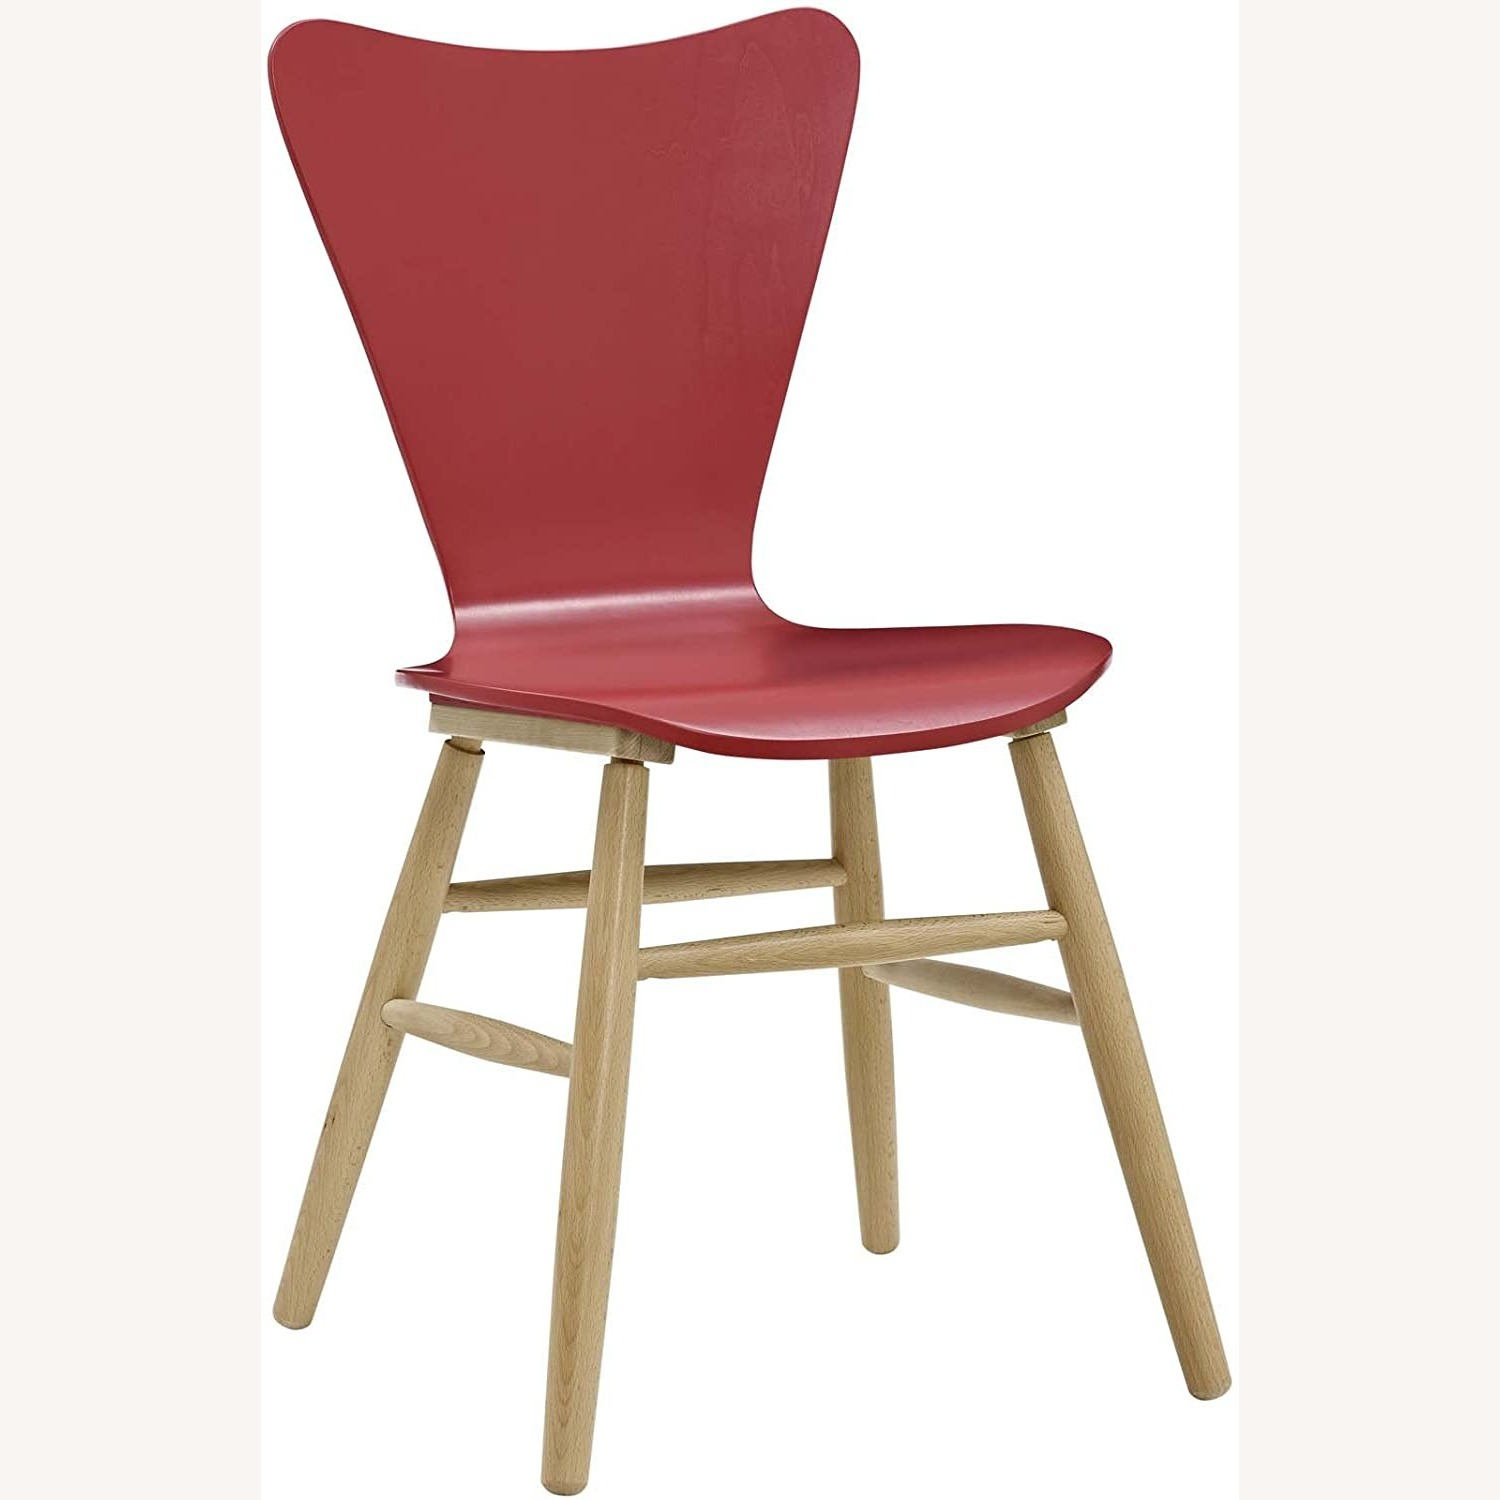 Mid-Century Style Dining Chair In Red Finish - image-0